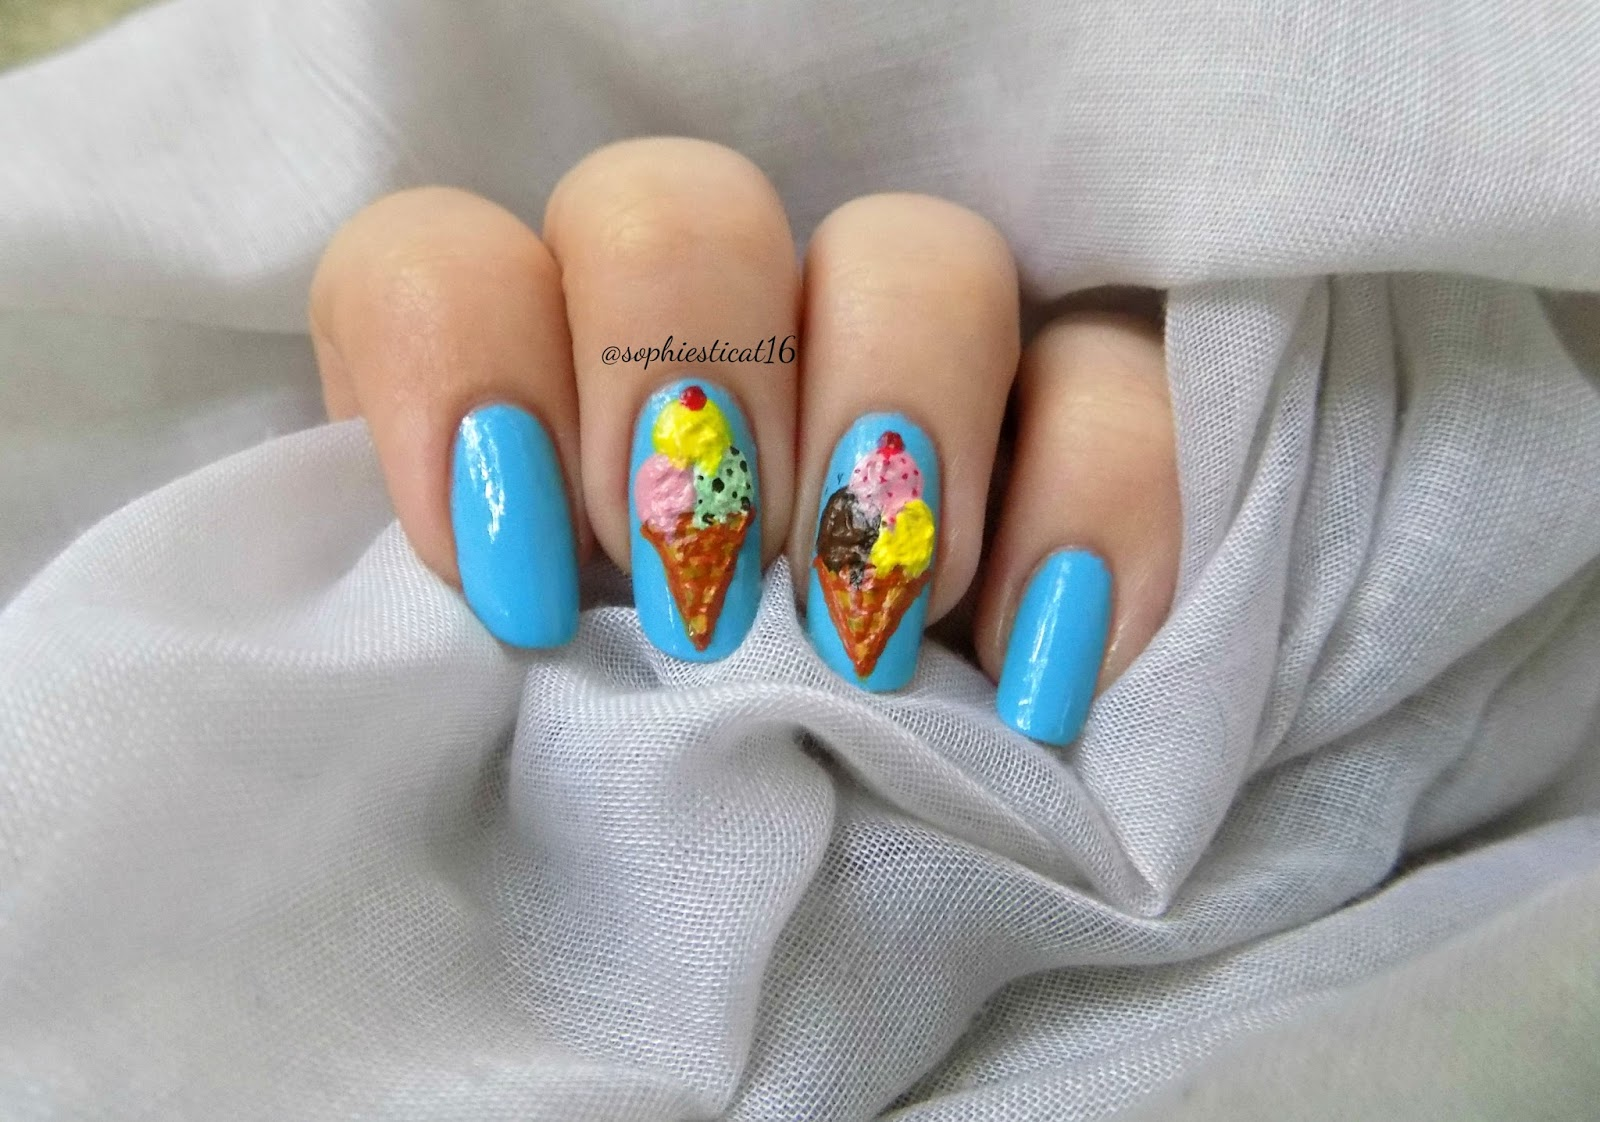 Junes nail challenge i scream for ice cream sophies nail art since i havent done anything spectacular lately i thought to myself this week ill have to go over the top i looked at my nail polish collection prinsesfo Image collections